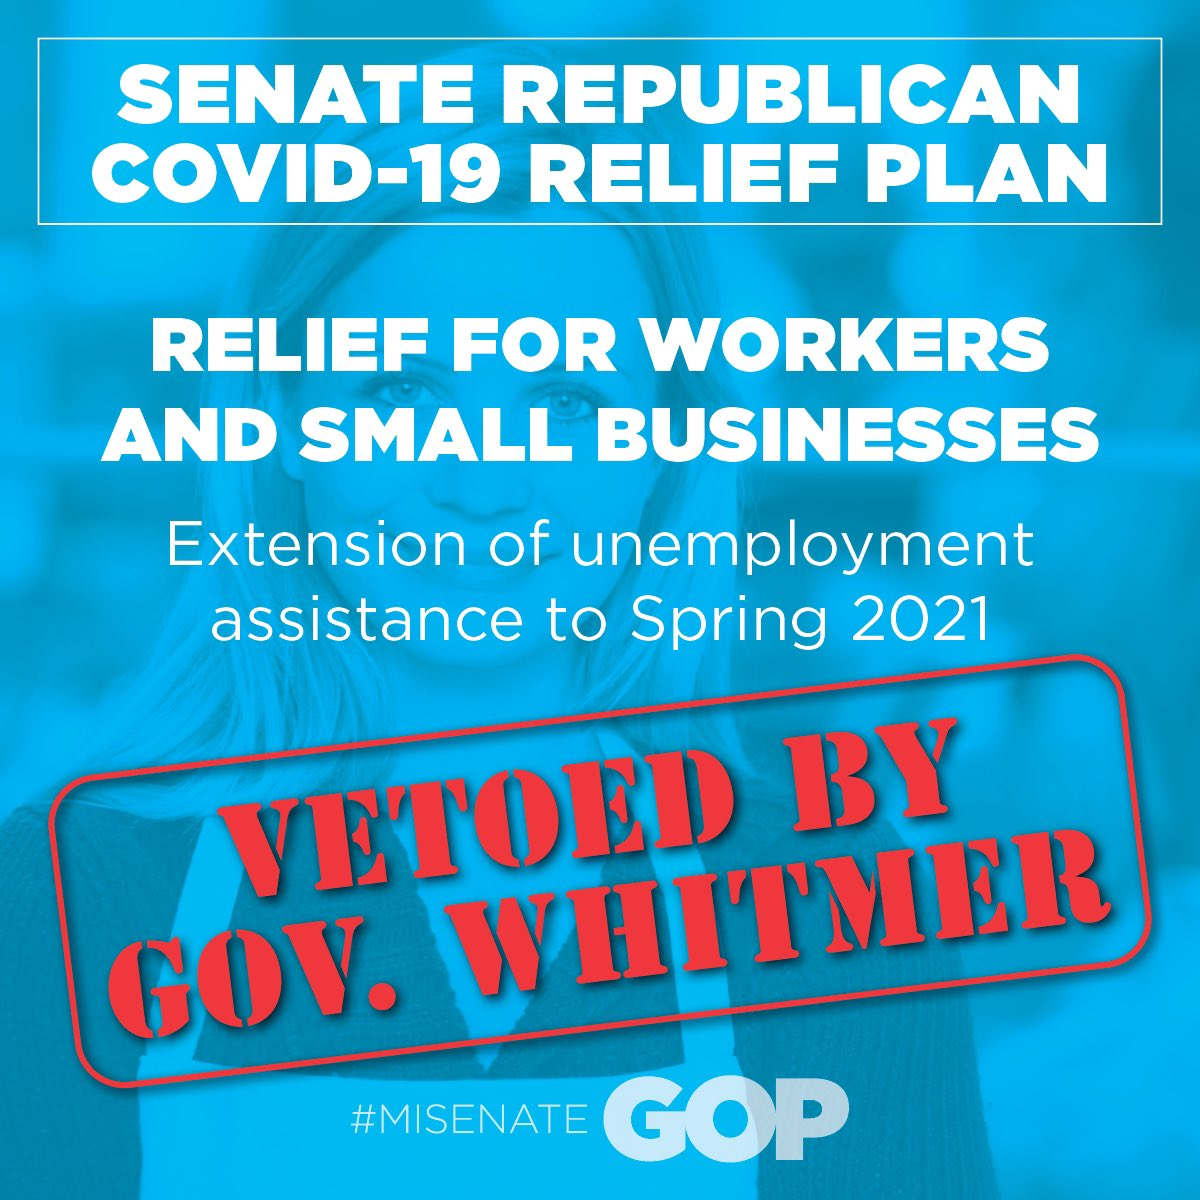 Just a reminder, @GovWhitmer VETOED the extension of unemployment benefits that the #MISenateGOP passed in December. #MISOTS21